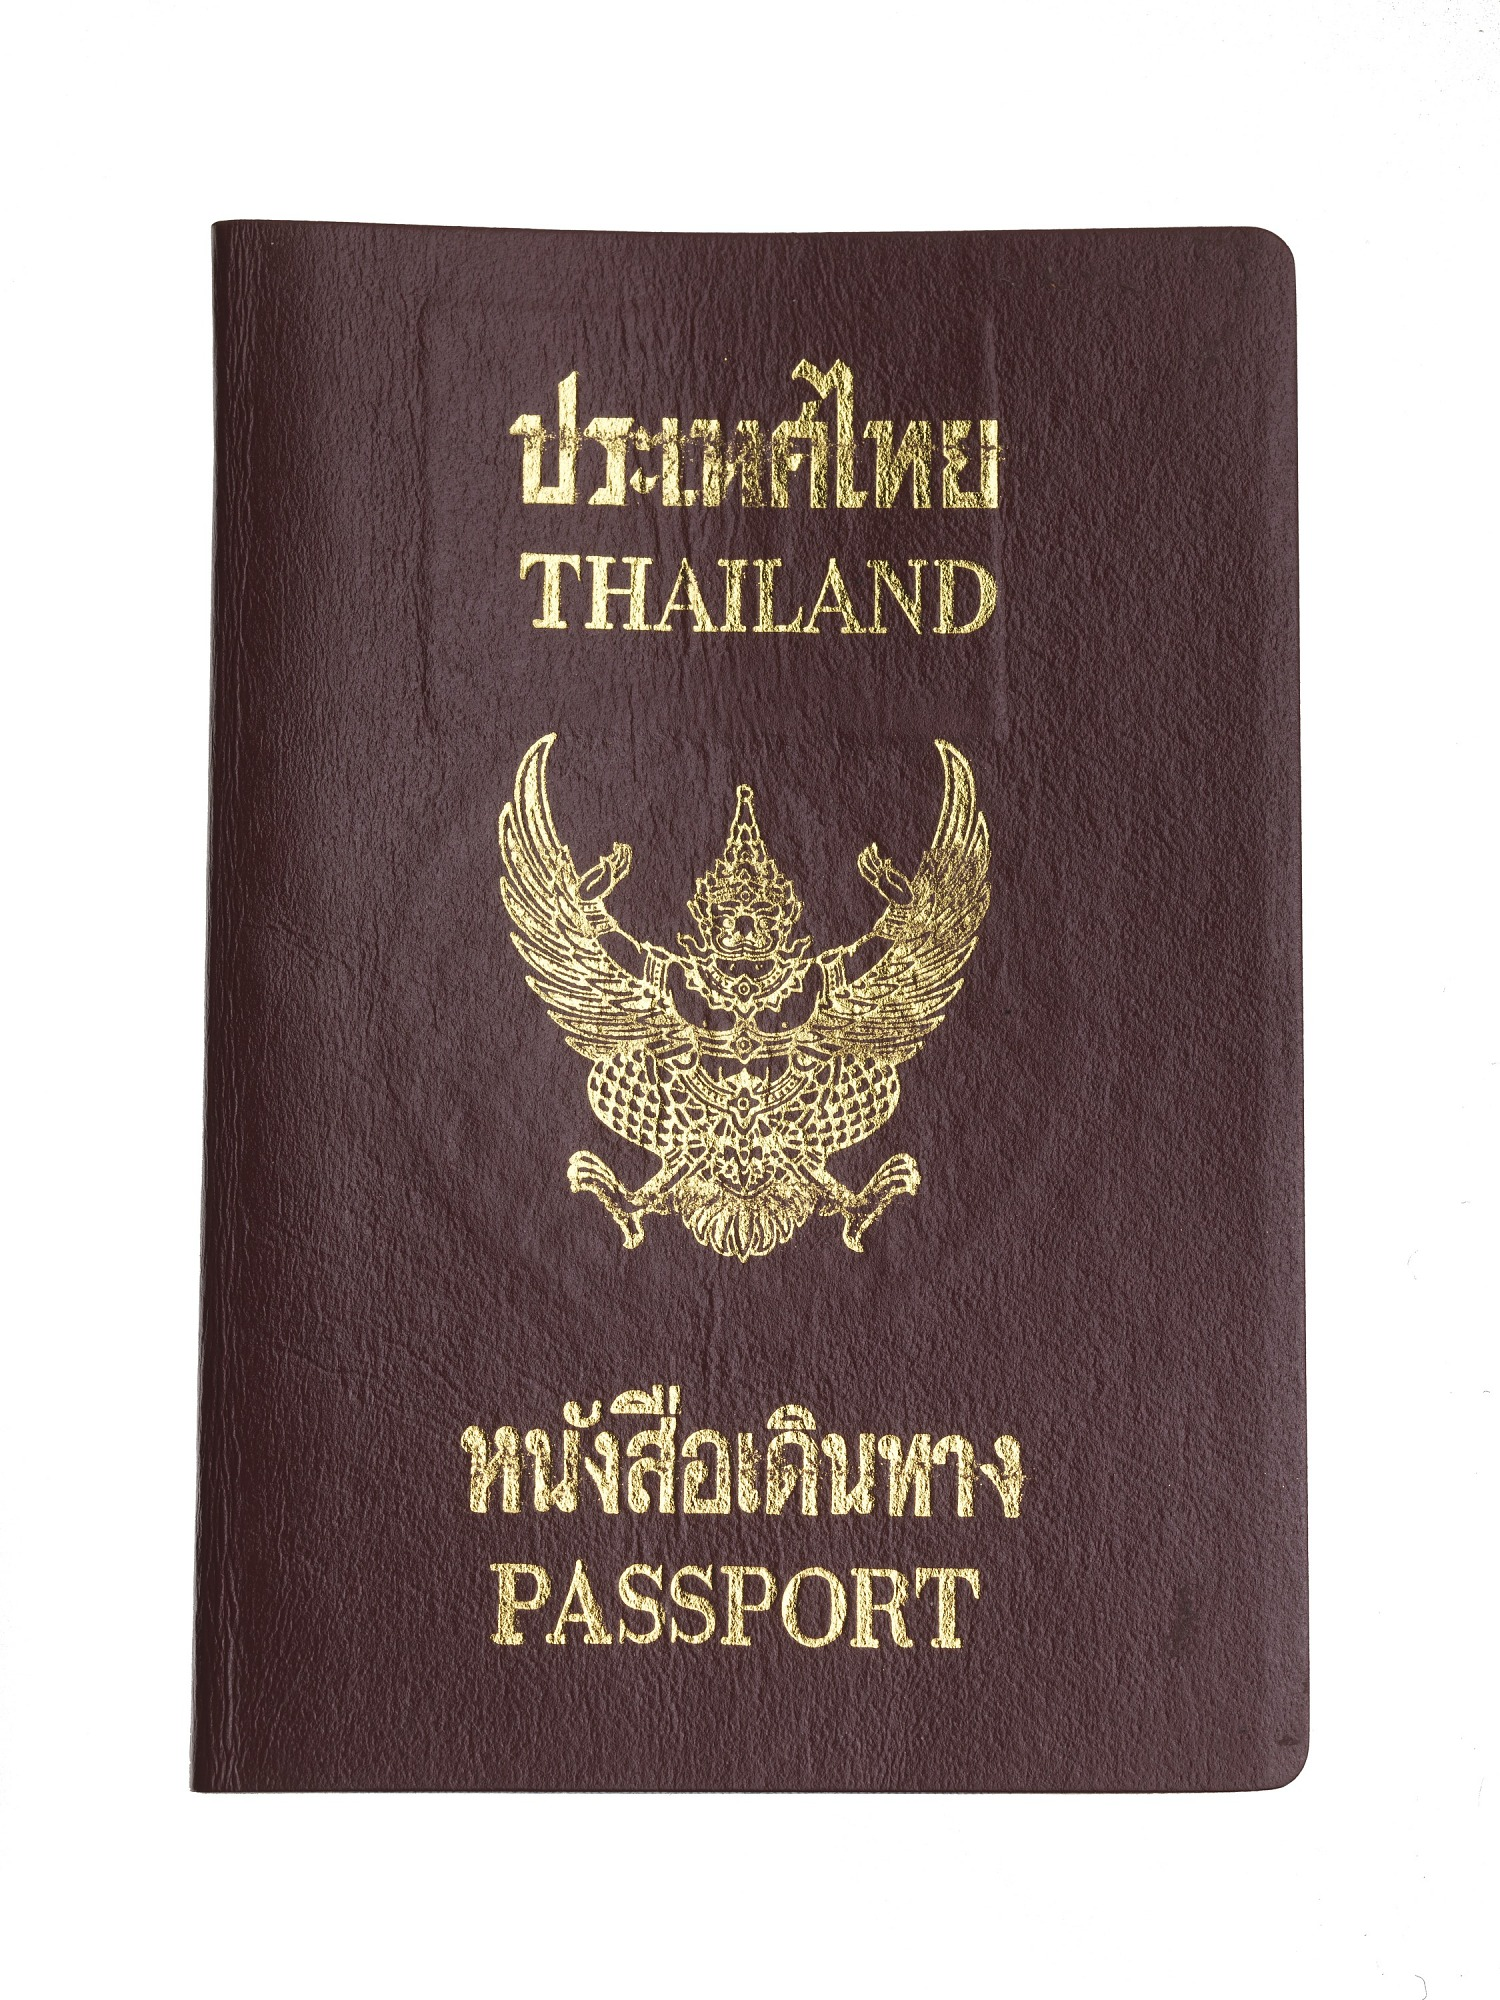 Replacement passport (closed)